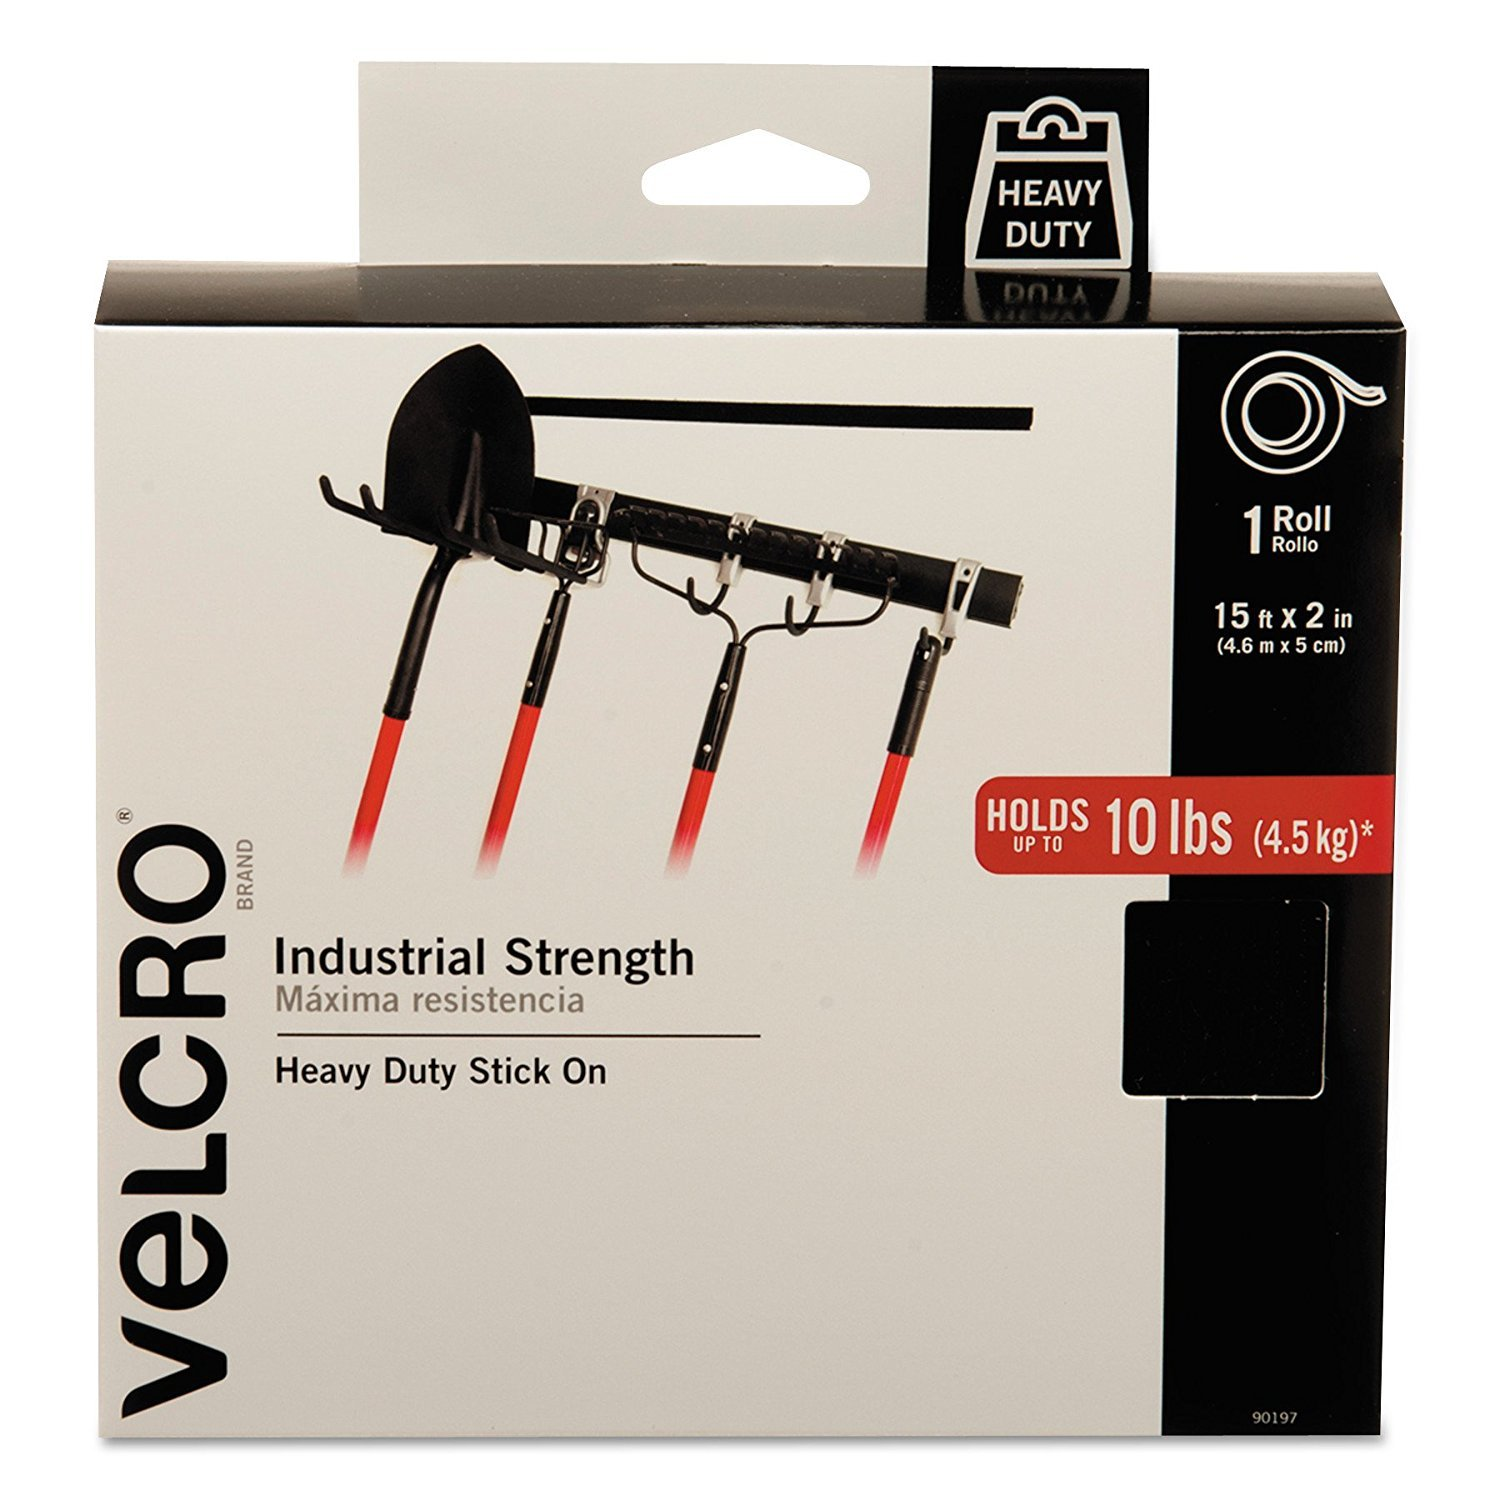 Velcro Brand Industrial Strength Indoor Outdoor 3x3 Super Set Circuit Workout Working It Out Pinterest Use Heavy Duty Superior Holding Power On Smooth Surfaces Size 15ft X 2in Tape